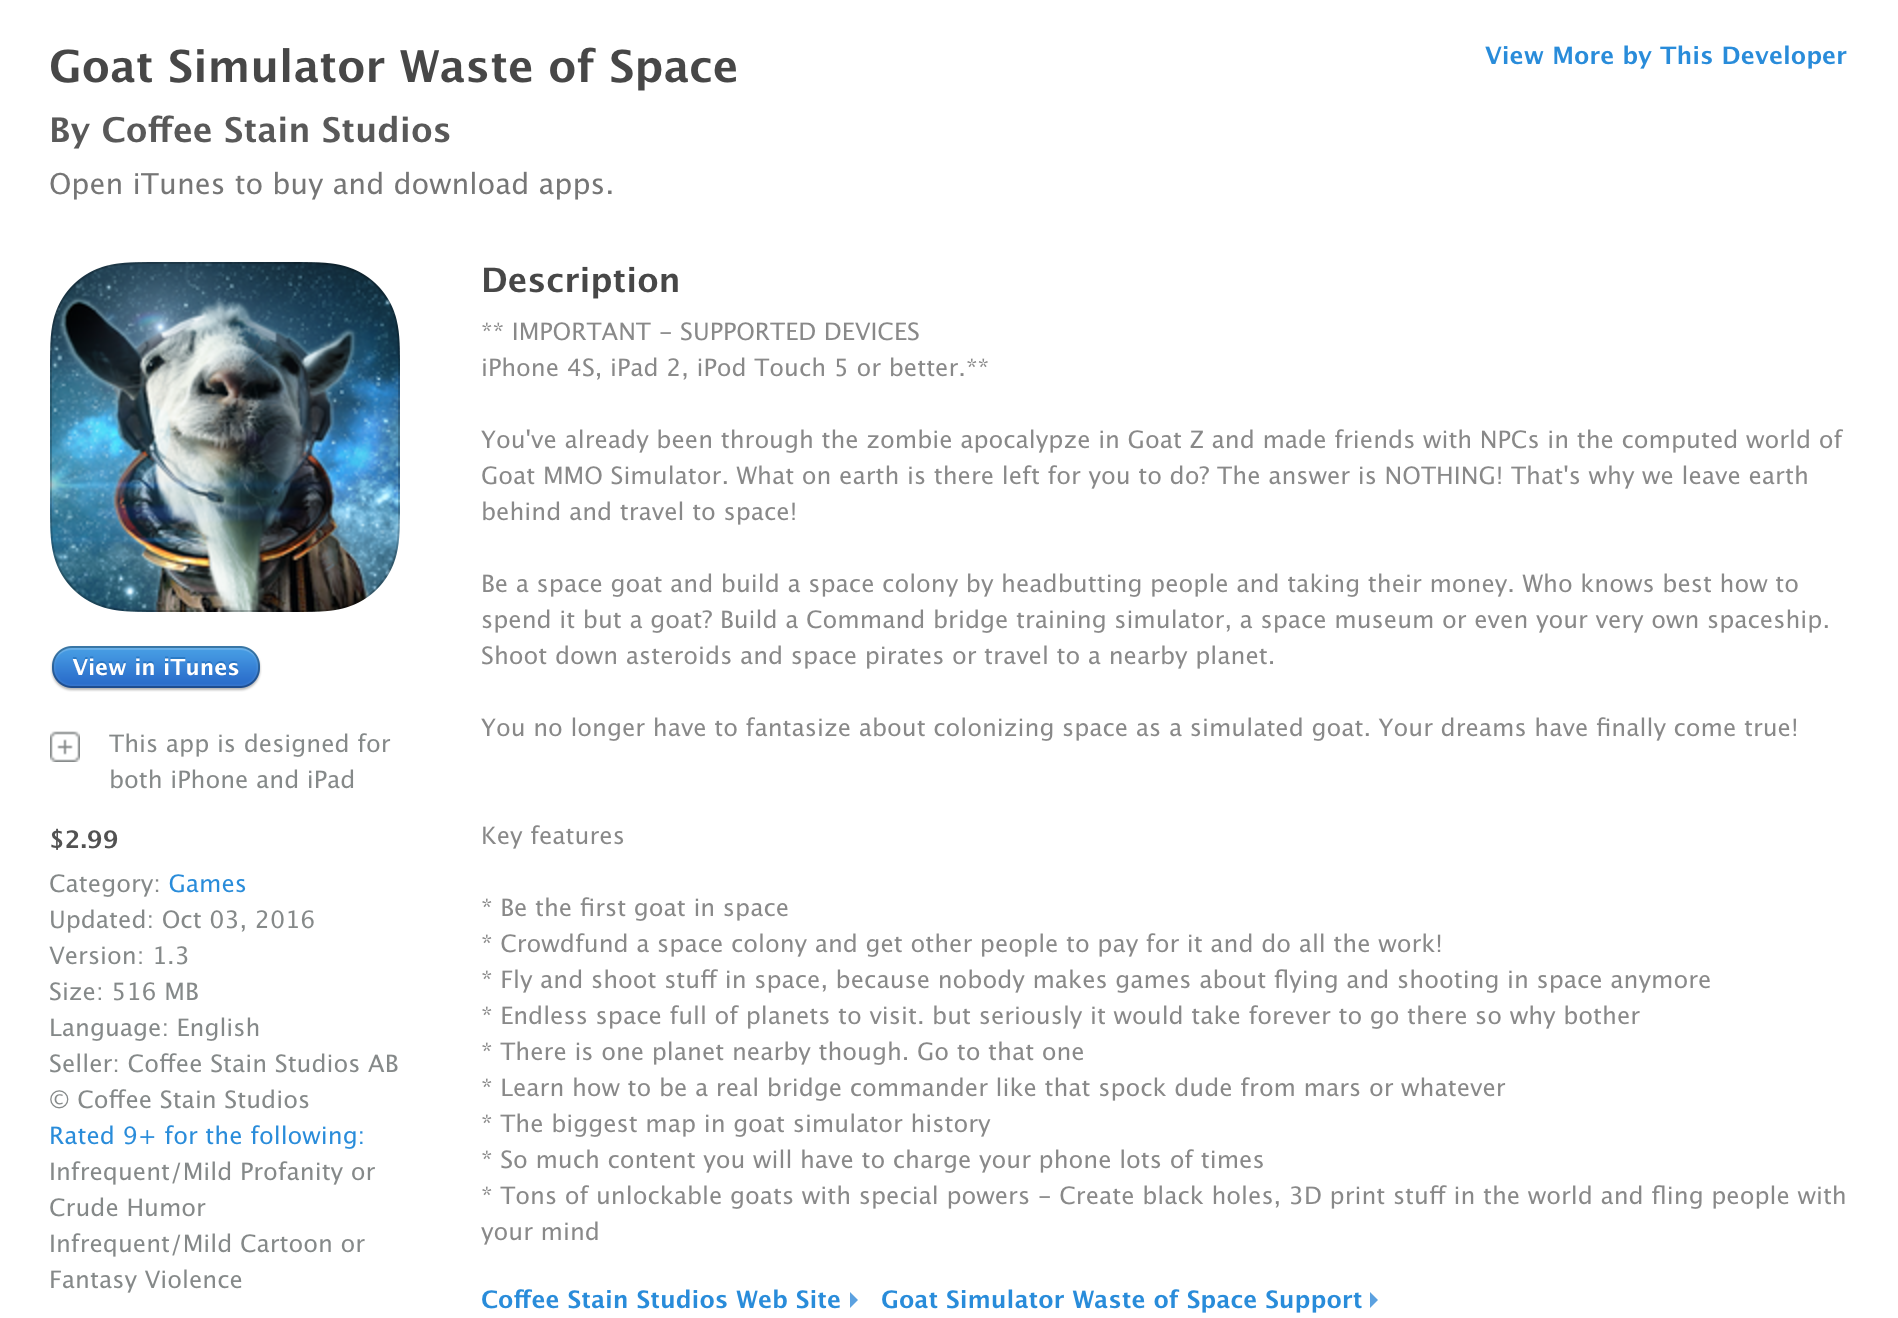 waste-of-space-goat-simulator-2